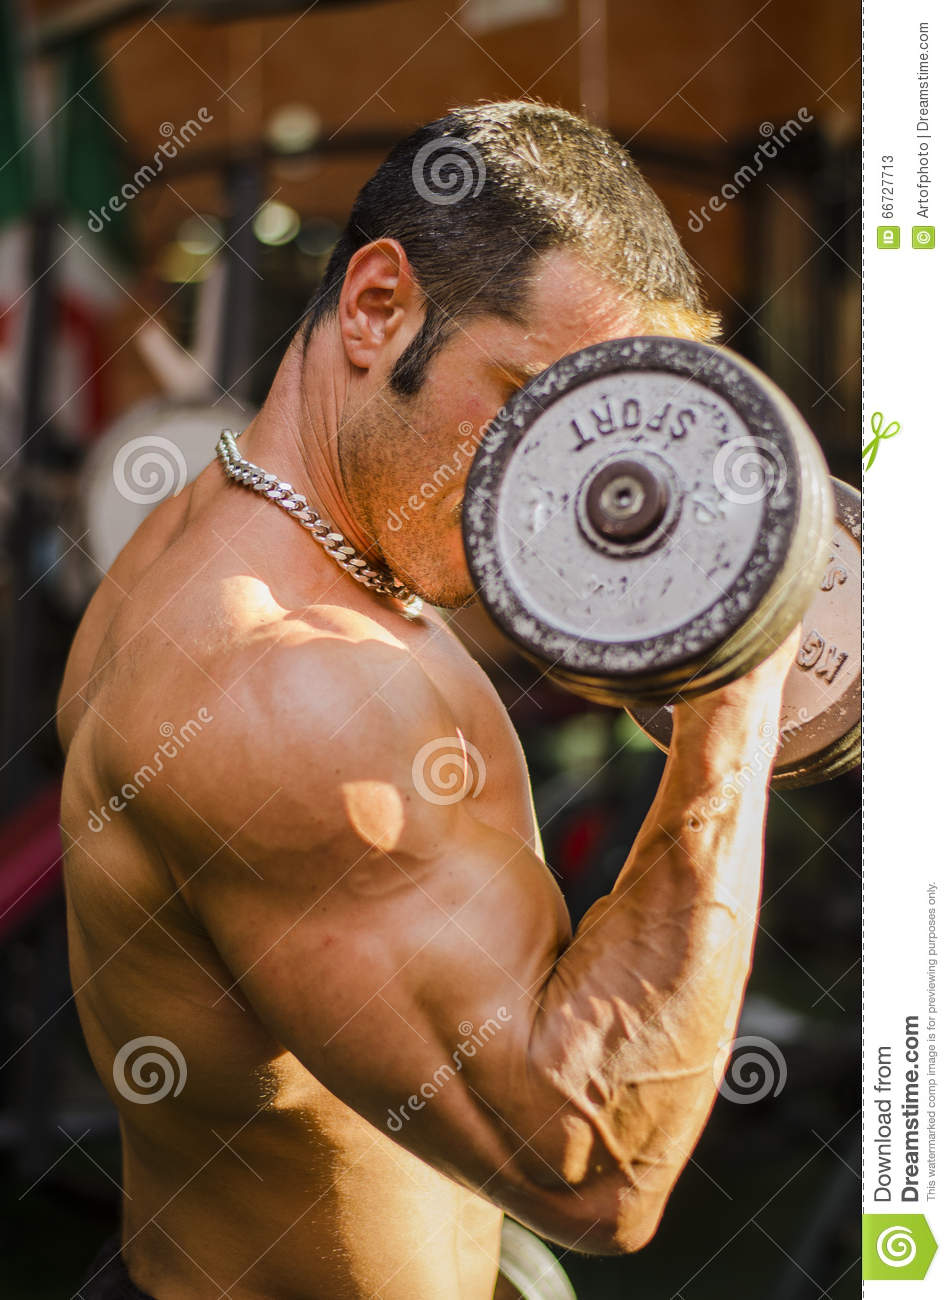 Bodybuilder Working Out At Gym Side View Of Muscular Chest Pecs